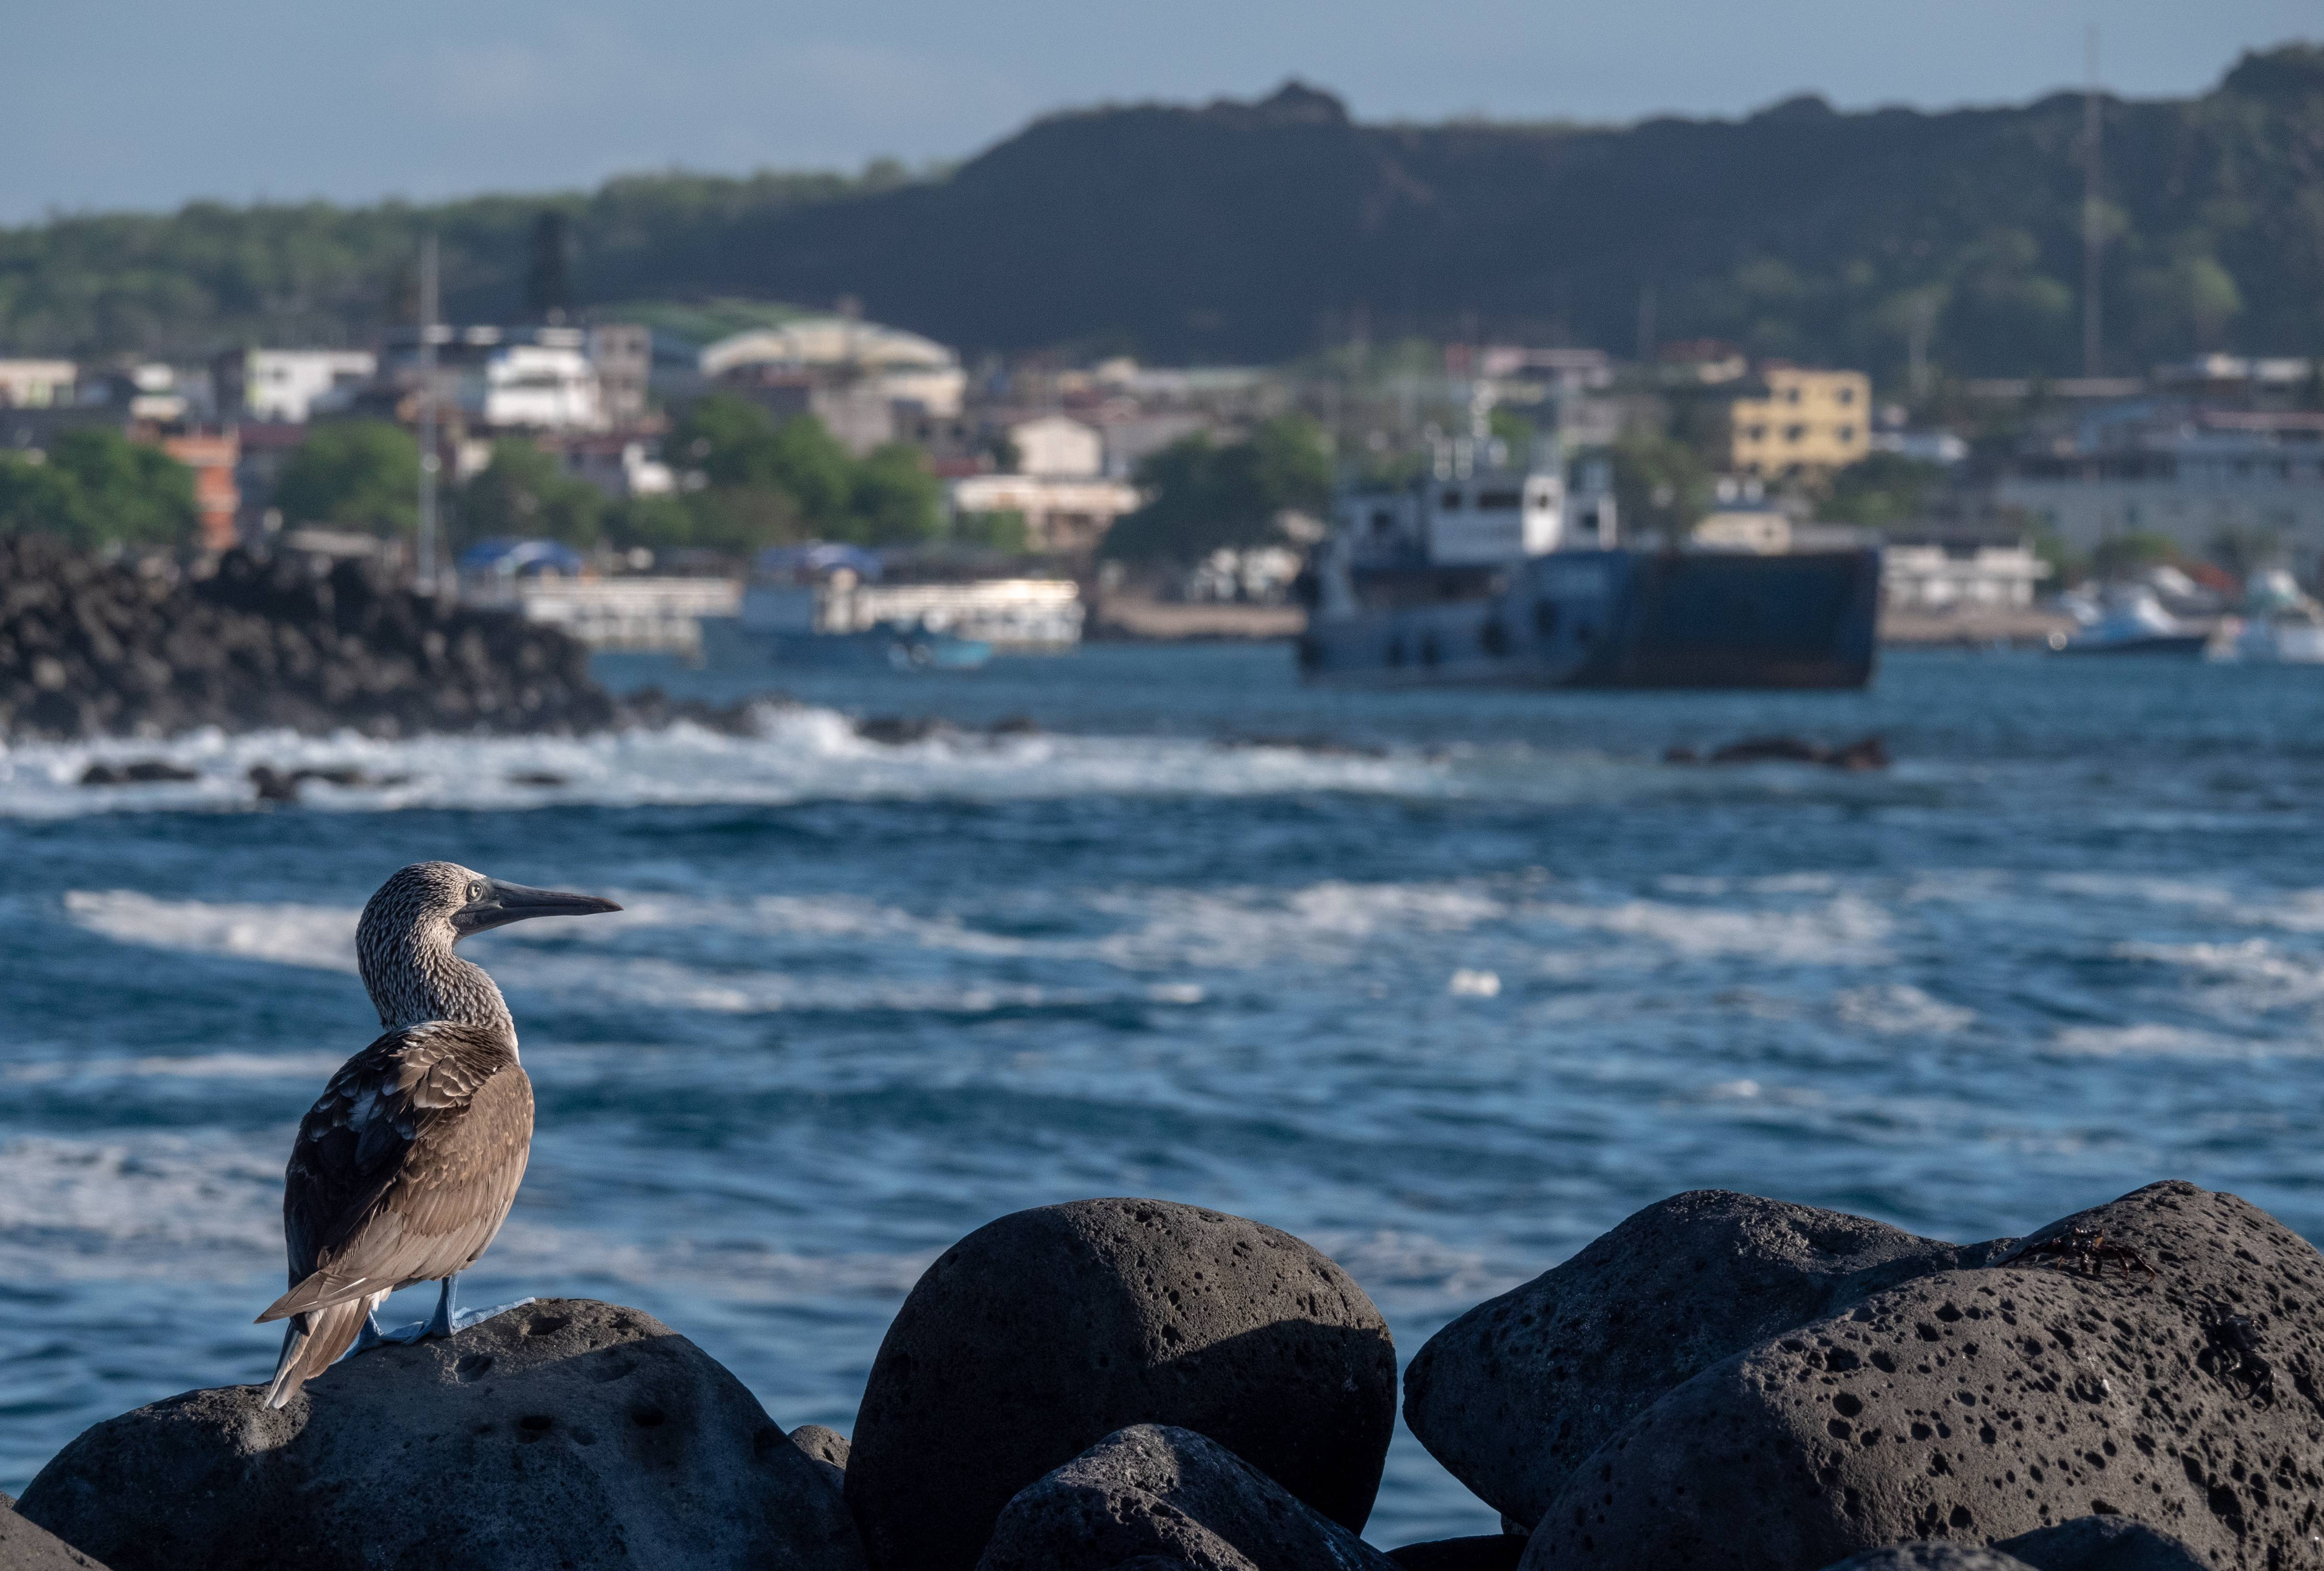 Activists Fear Species Exclusive to Ecuador's Galápagos Islands at Risk After 600-Gallon Oil Spill